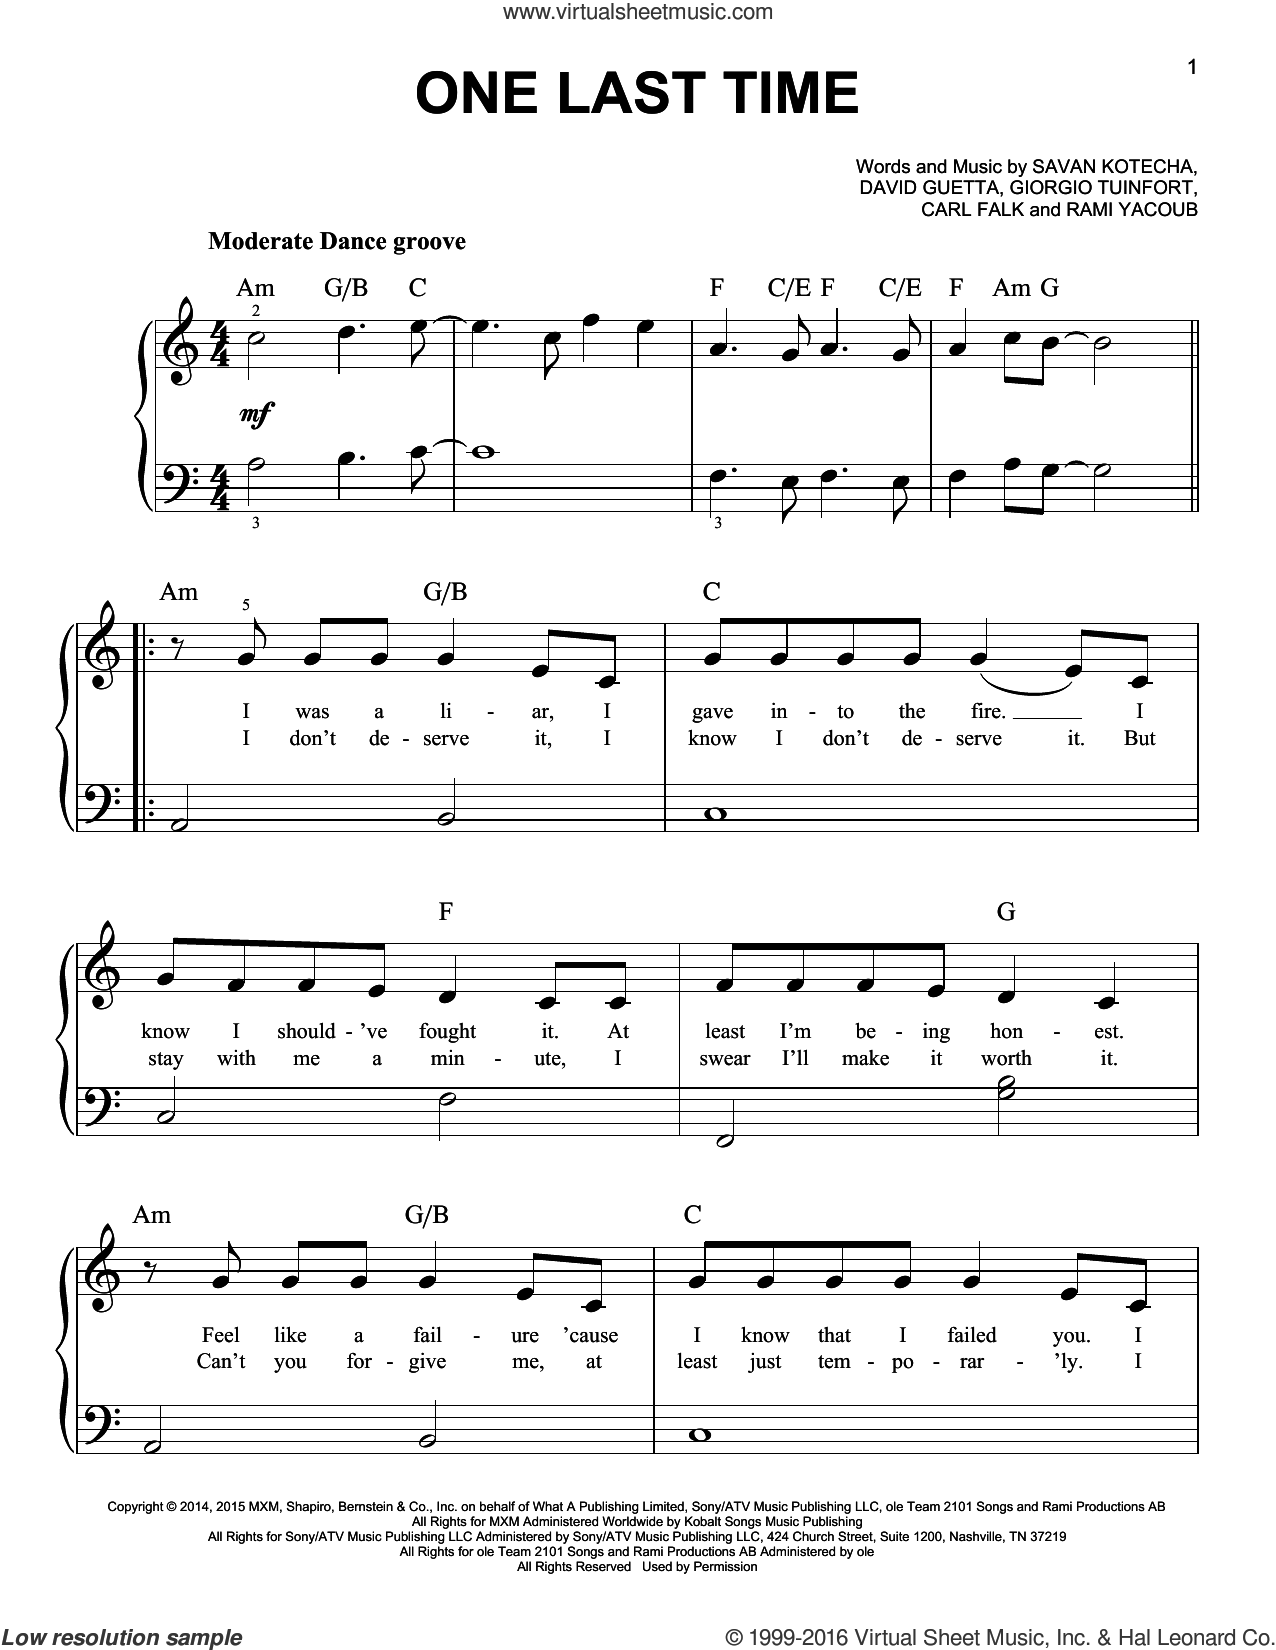 One Last Time sheet music for piano solo by Ariana Grande, Carl Falk, David Guetta, Giorgio Tuinfort, Rami and Savan Kotecha, easy skill level